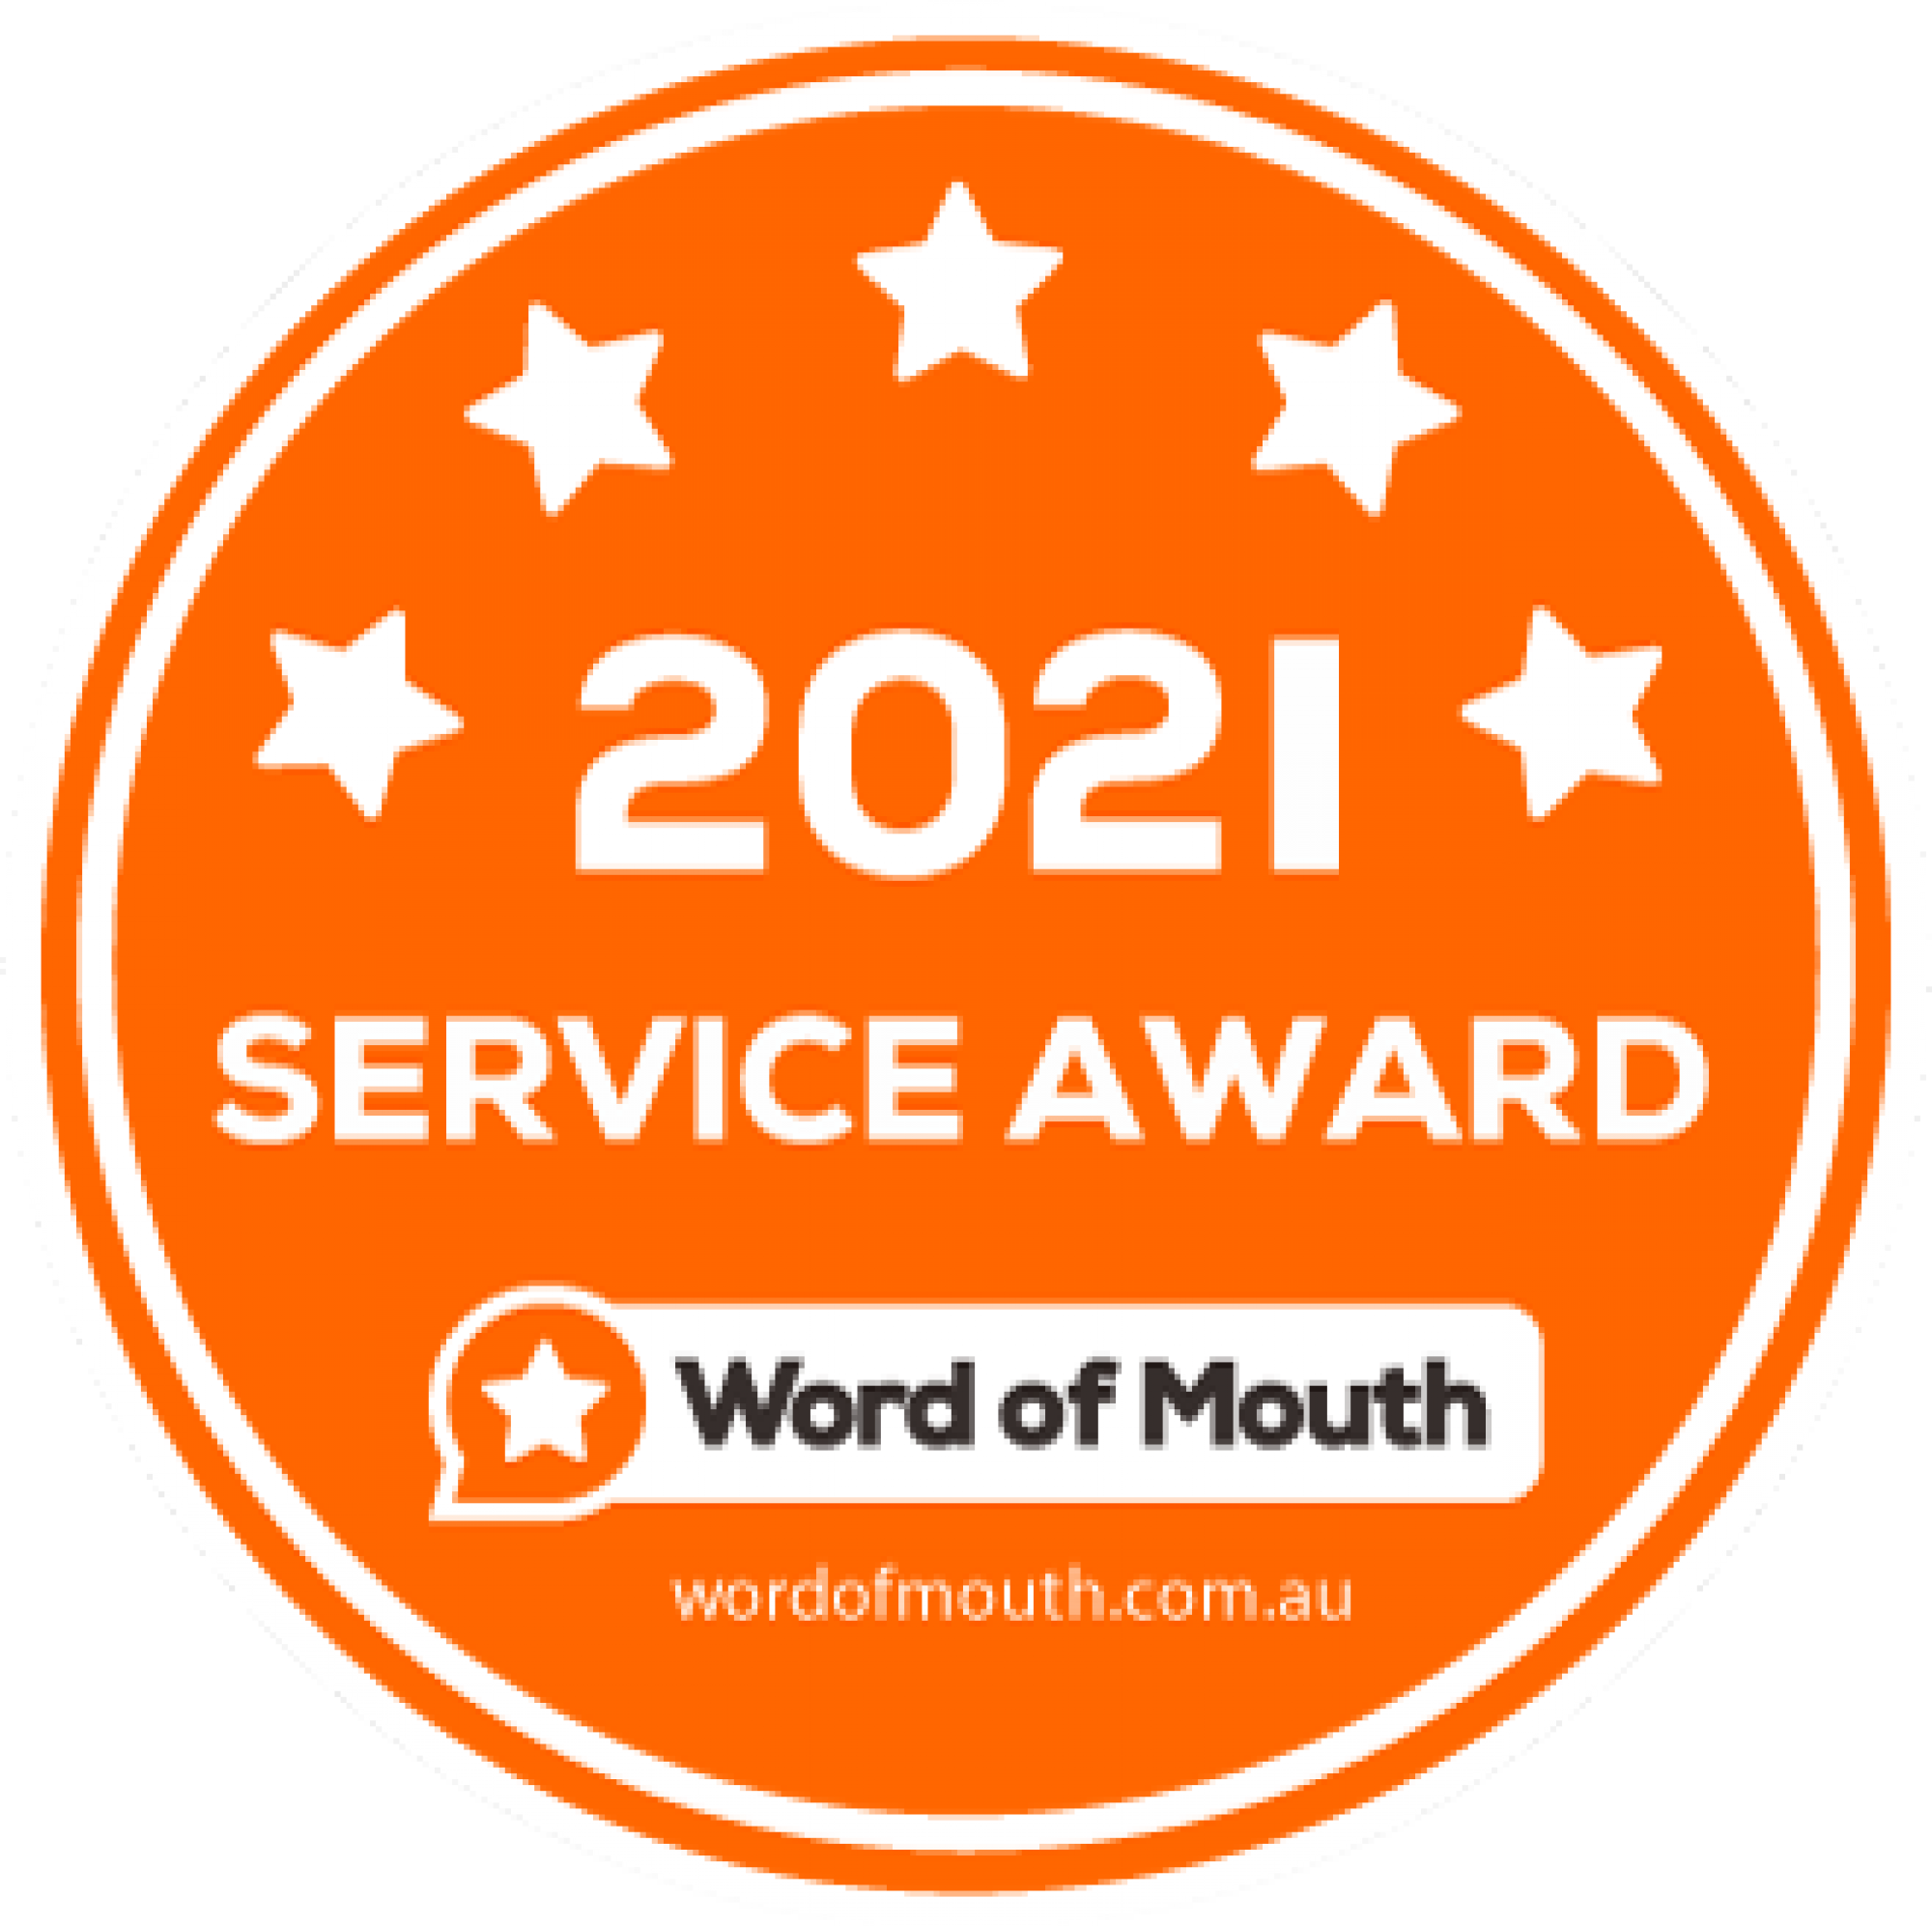 Word of Mouth 2021 Service Award